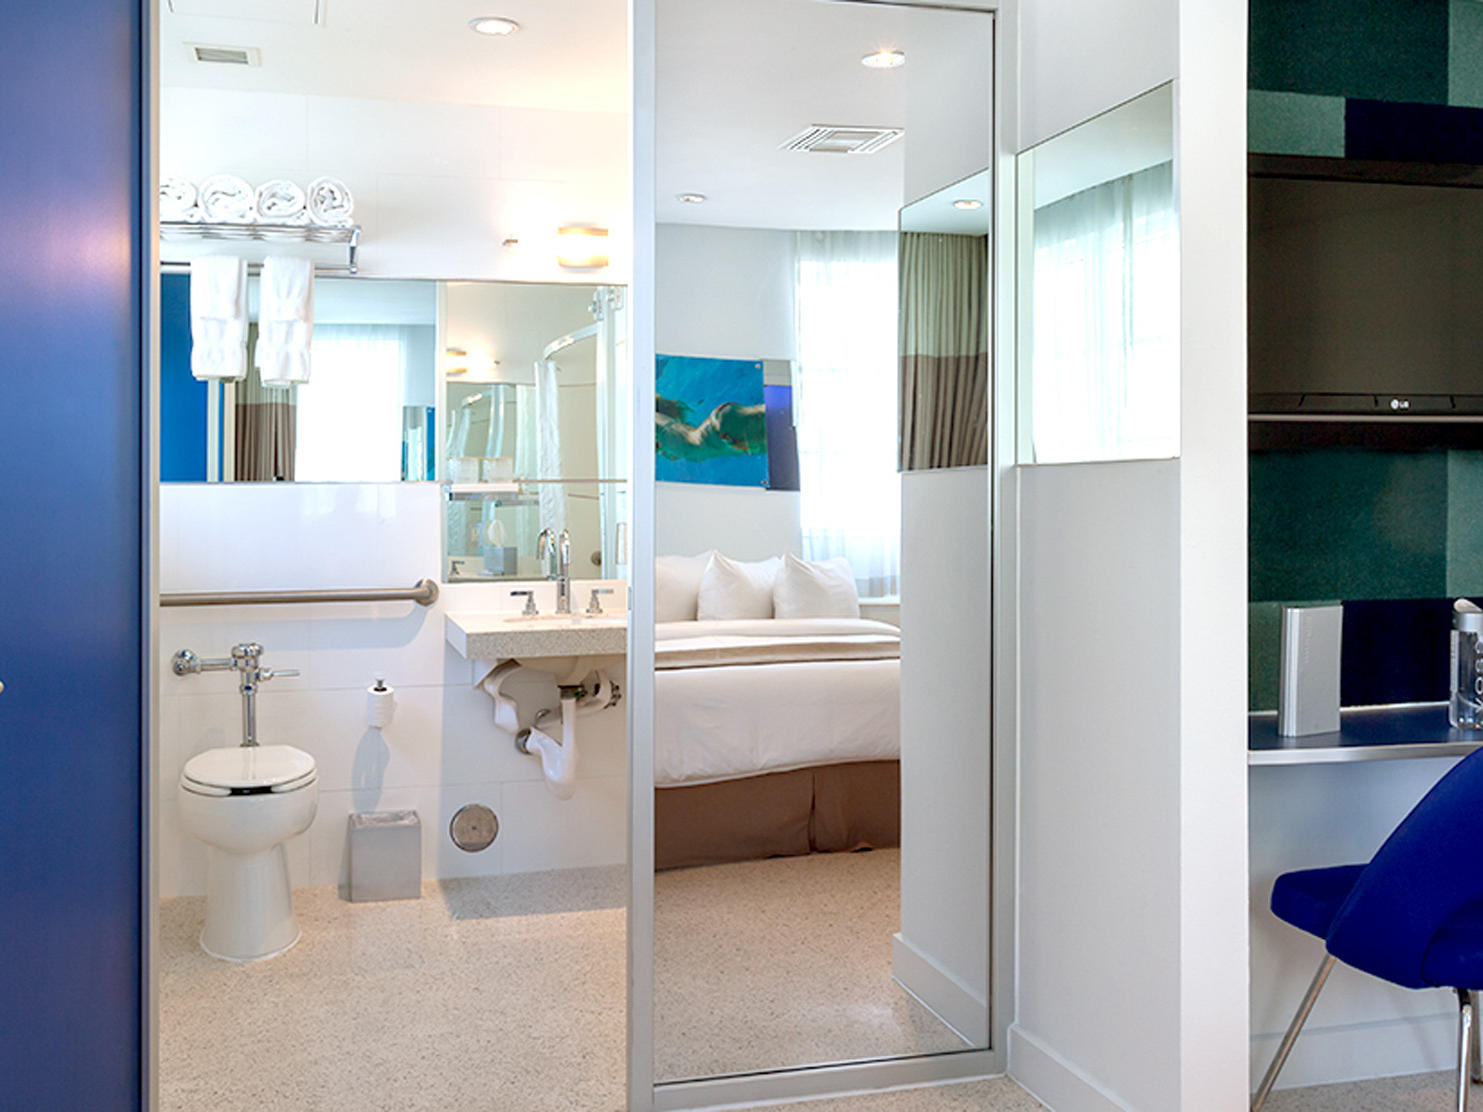 Bathroom at Classic Rooms Queen room in Clevelander South Beach